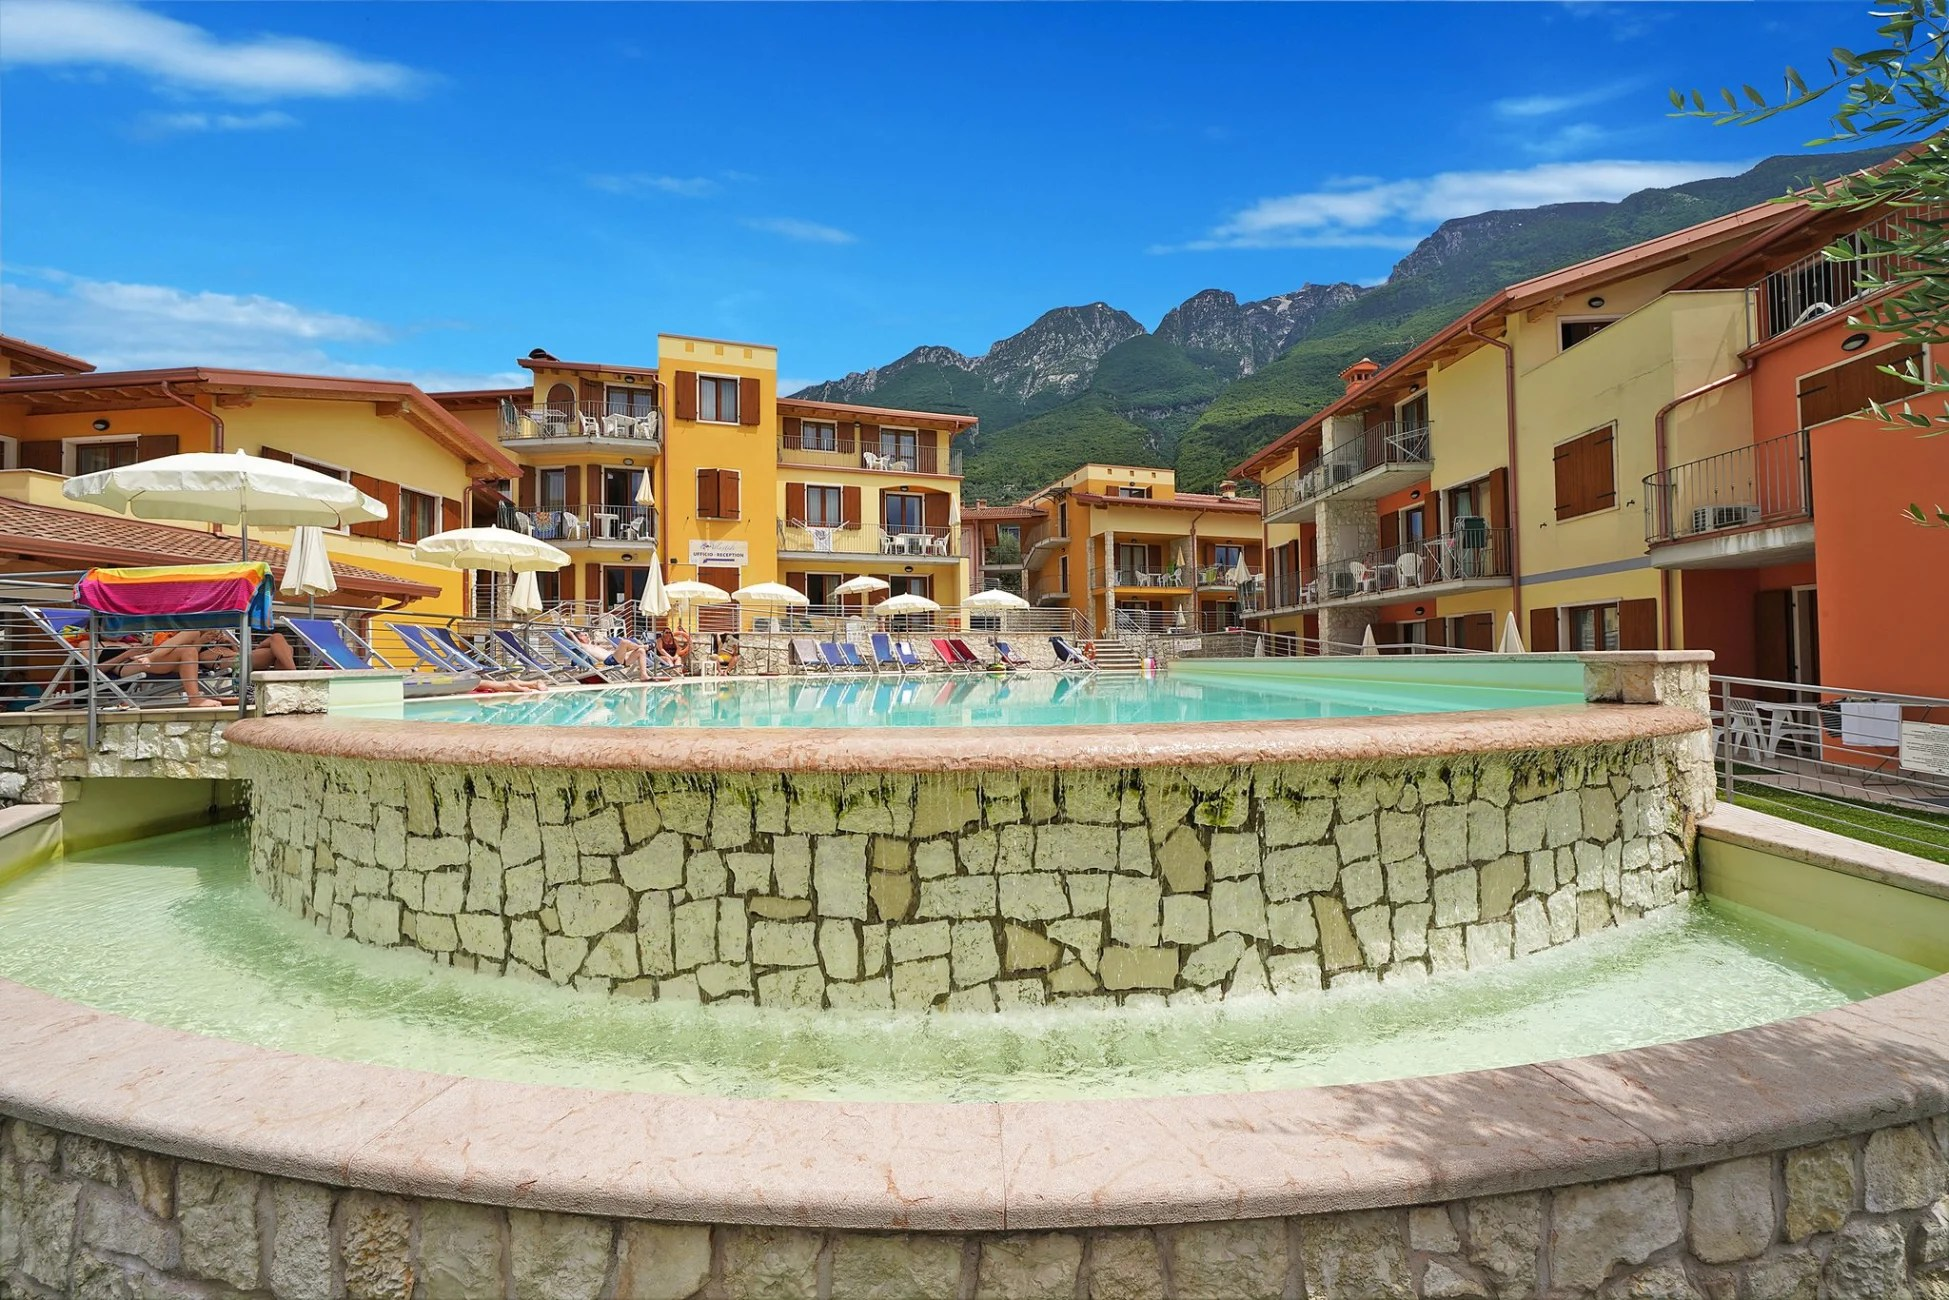 Hotel Caminetto Garda Serviced Apartment Atlantide Villaggio Albergo Brenzone Sul Garda